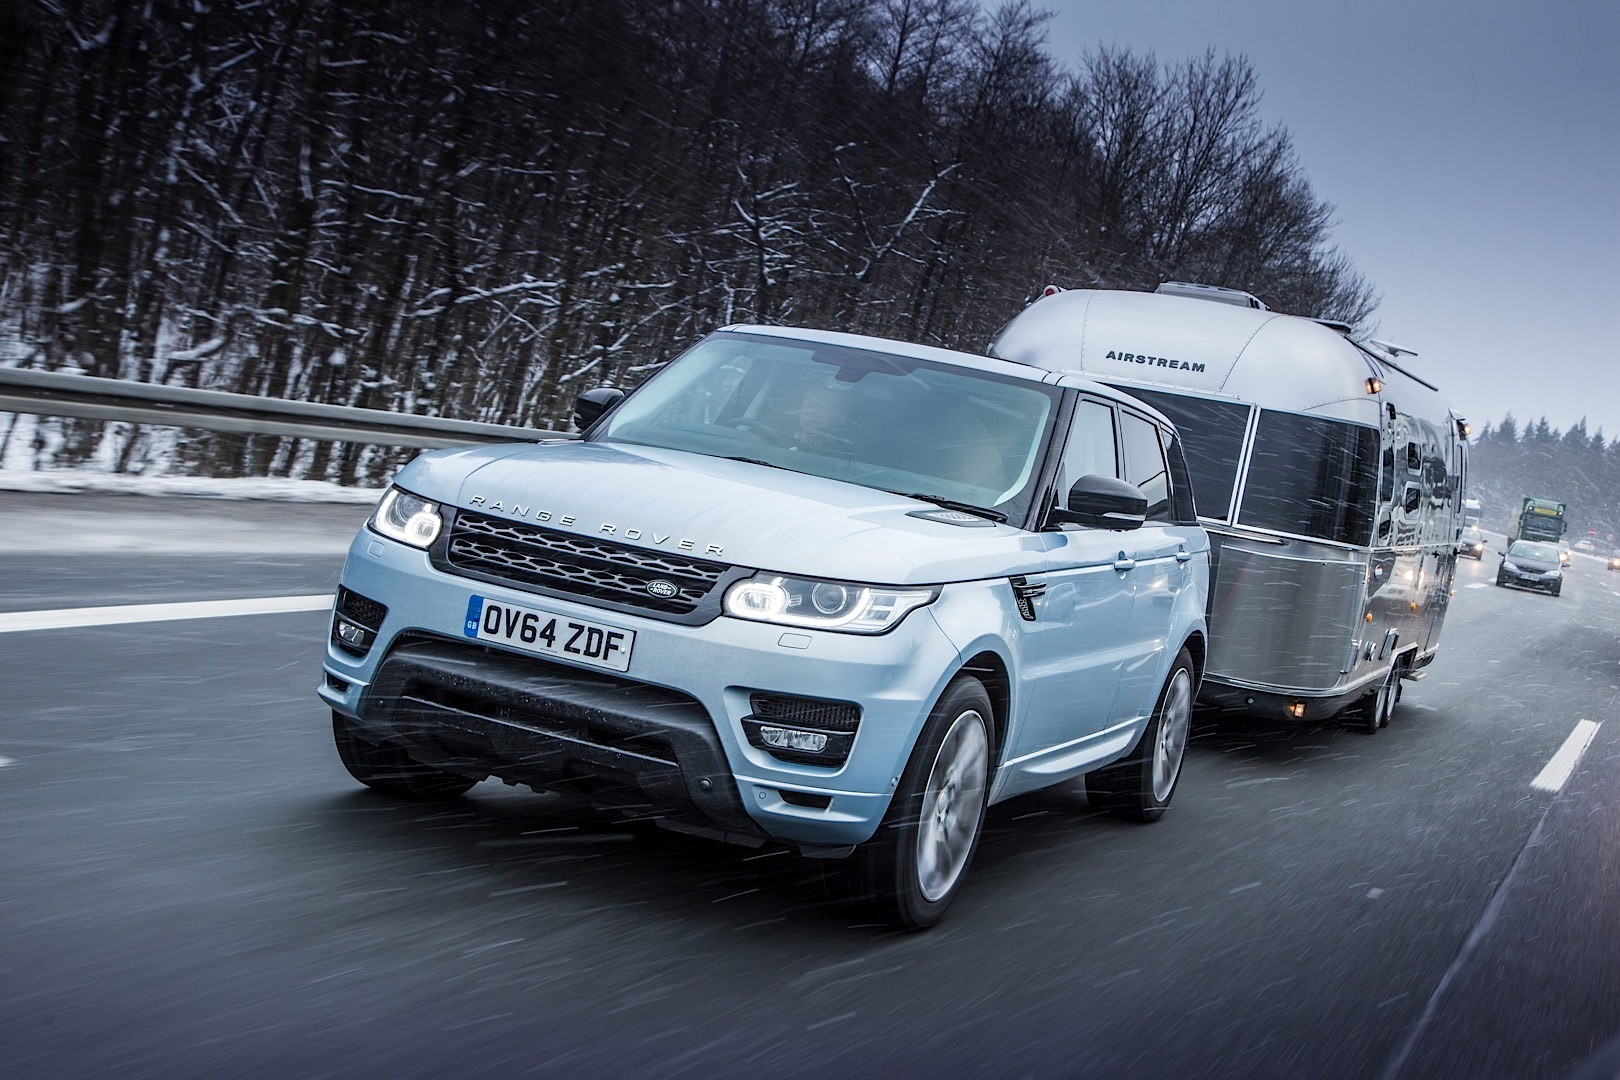 range rover sport hybrid fights severe arctic cold while dragging a trailer autoevolution. Black Bedroom Furniture Sets. Home Design Ideas